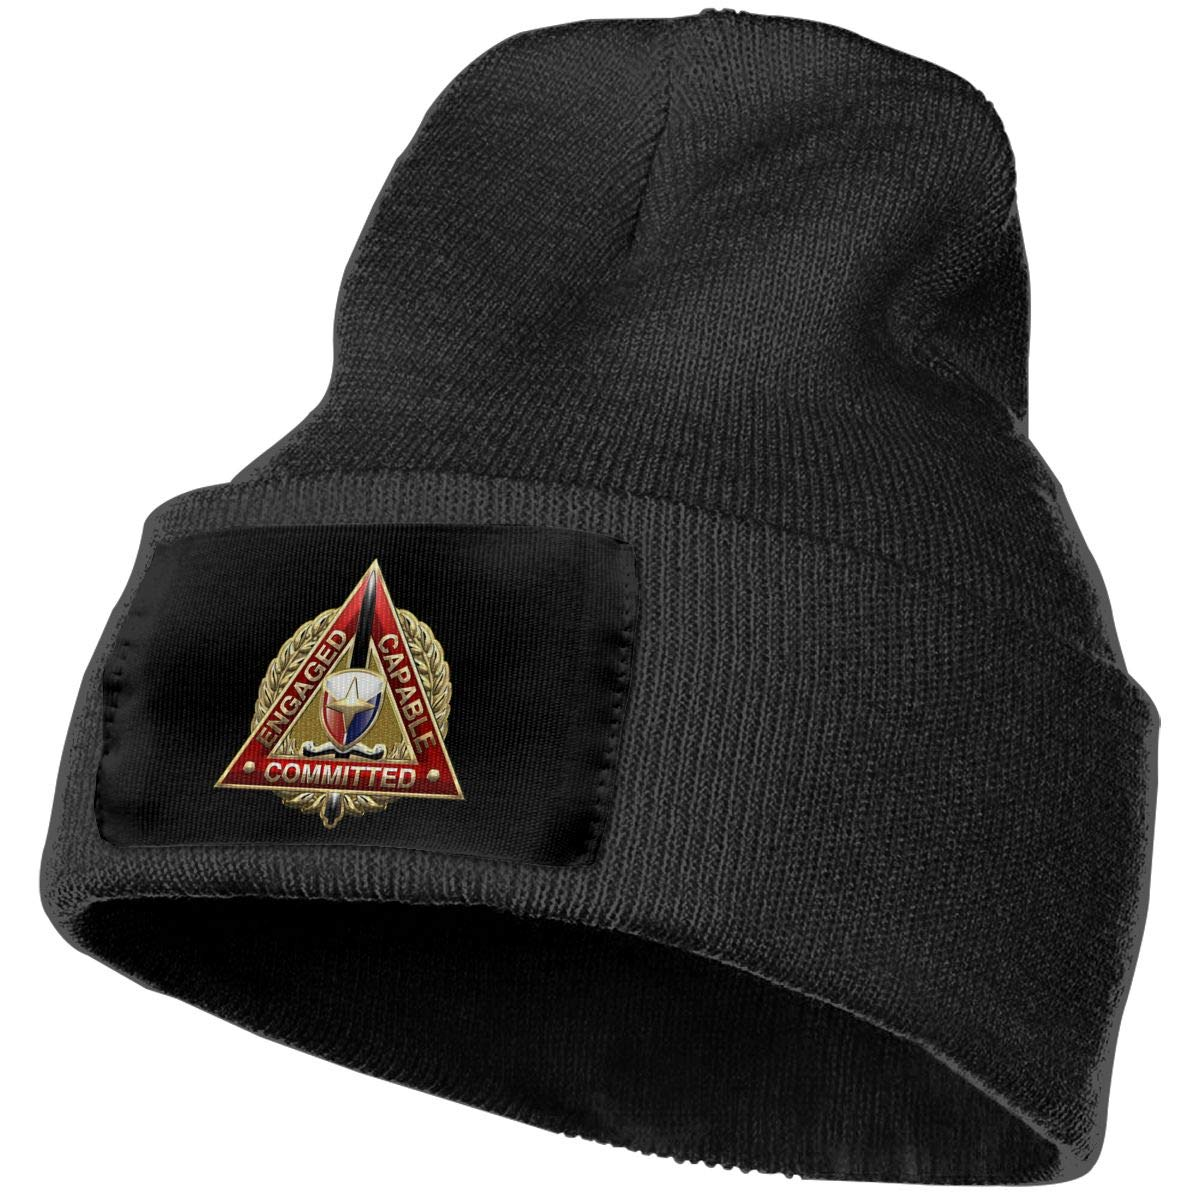 Expeditionary Contracting Command Mens Beanie Cap Skull Cap Winter Warm Knitting Hats.